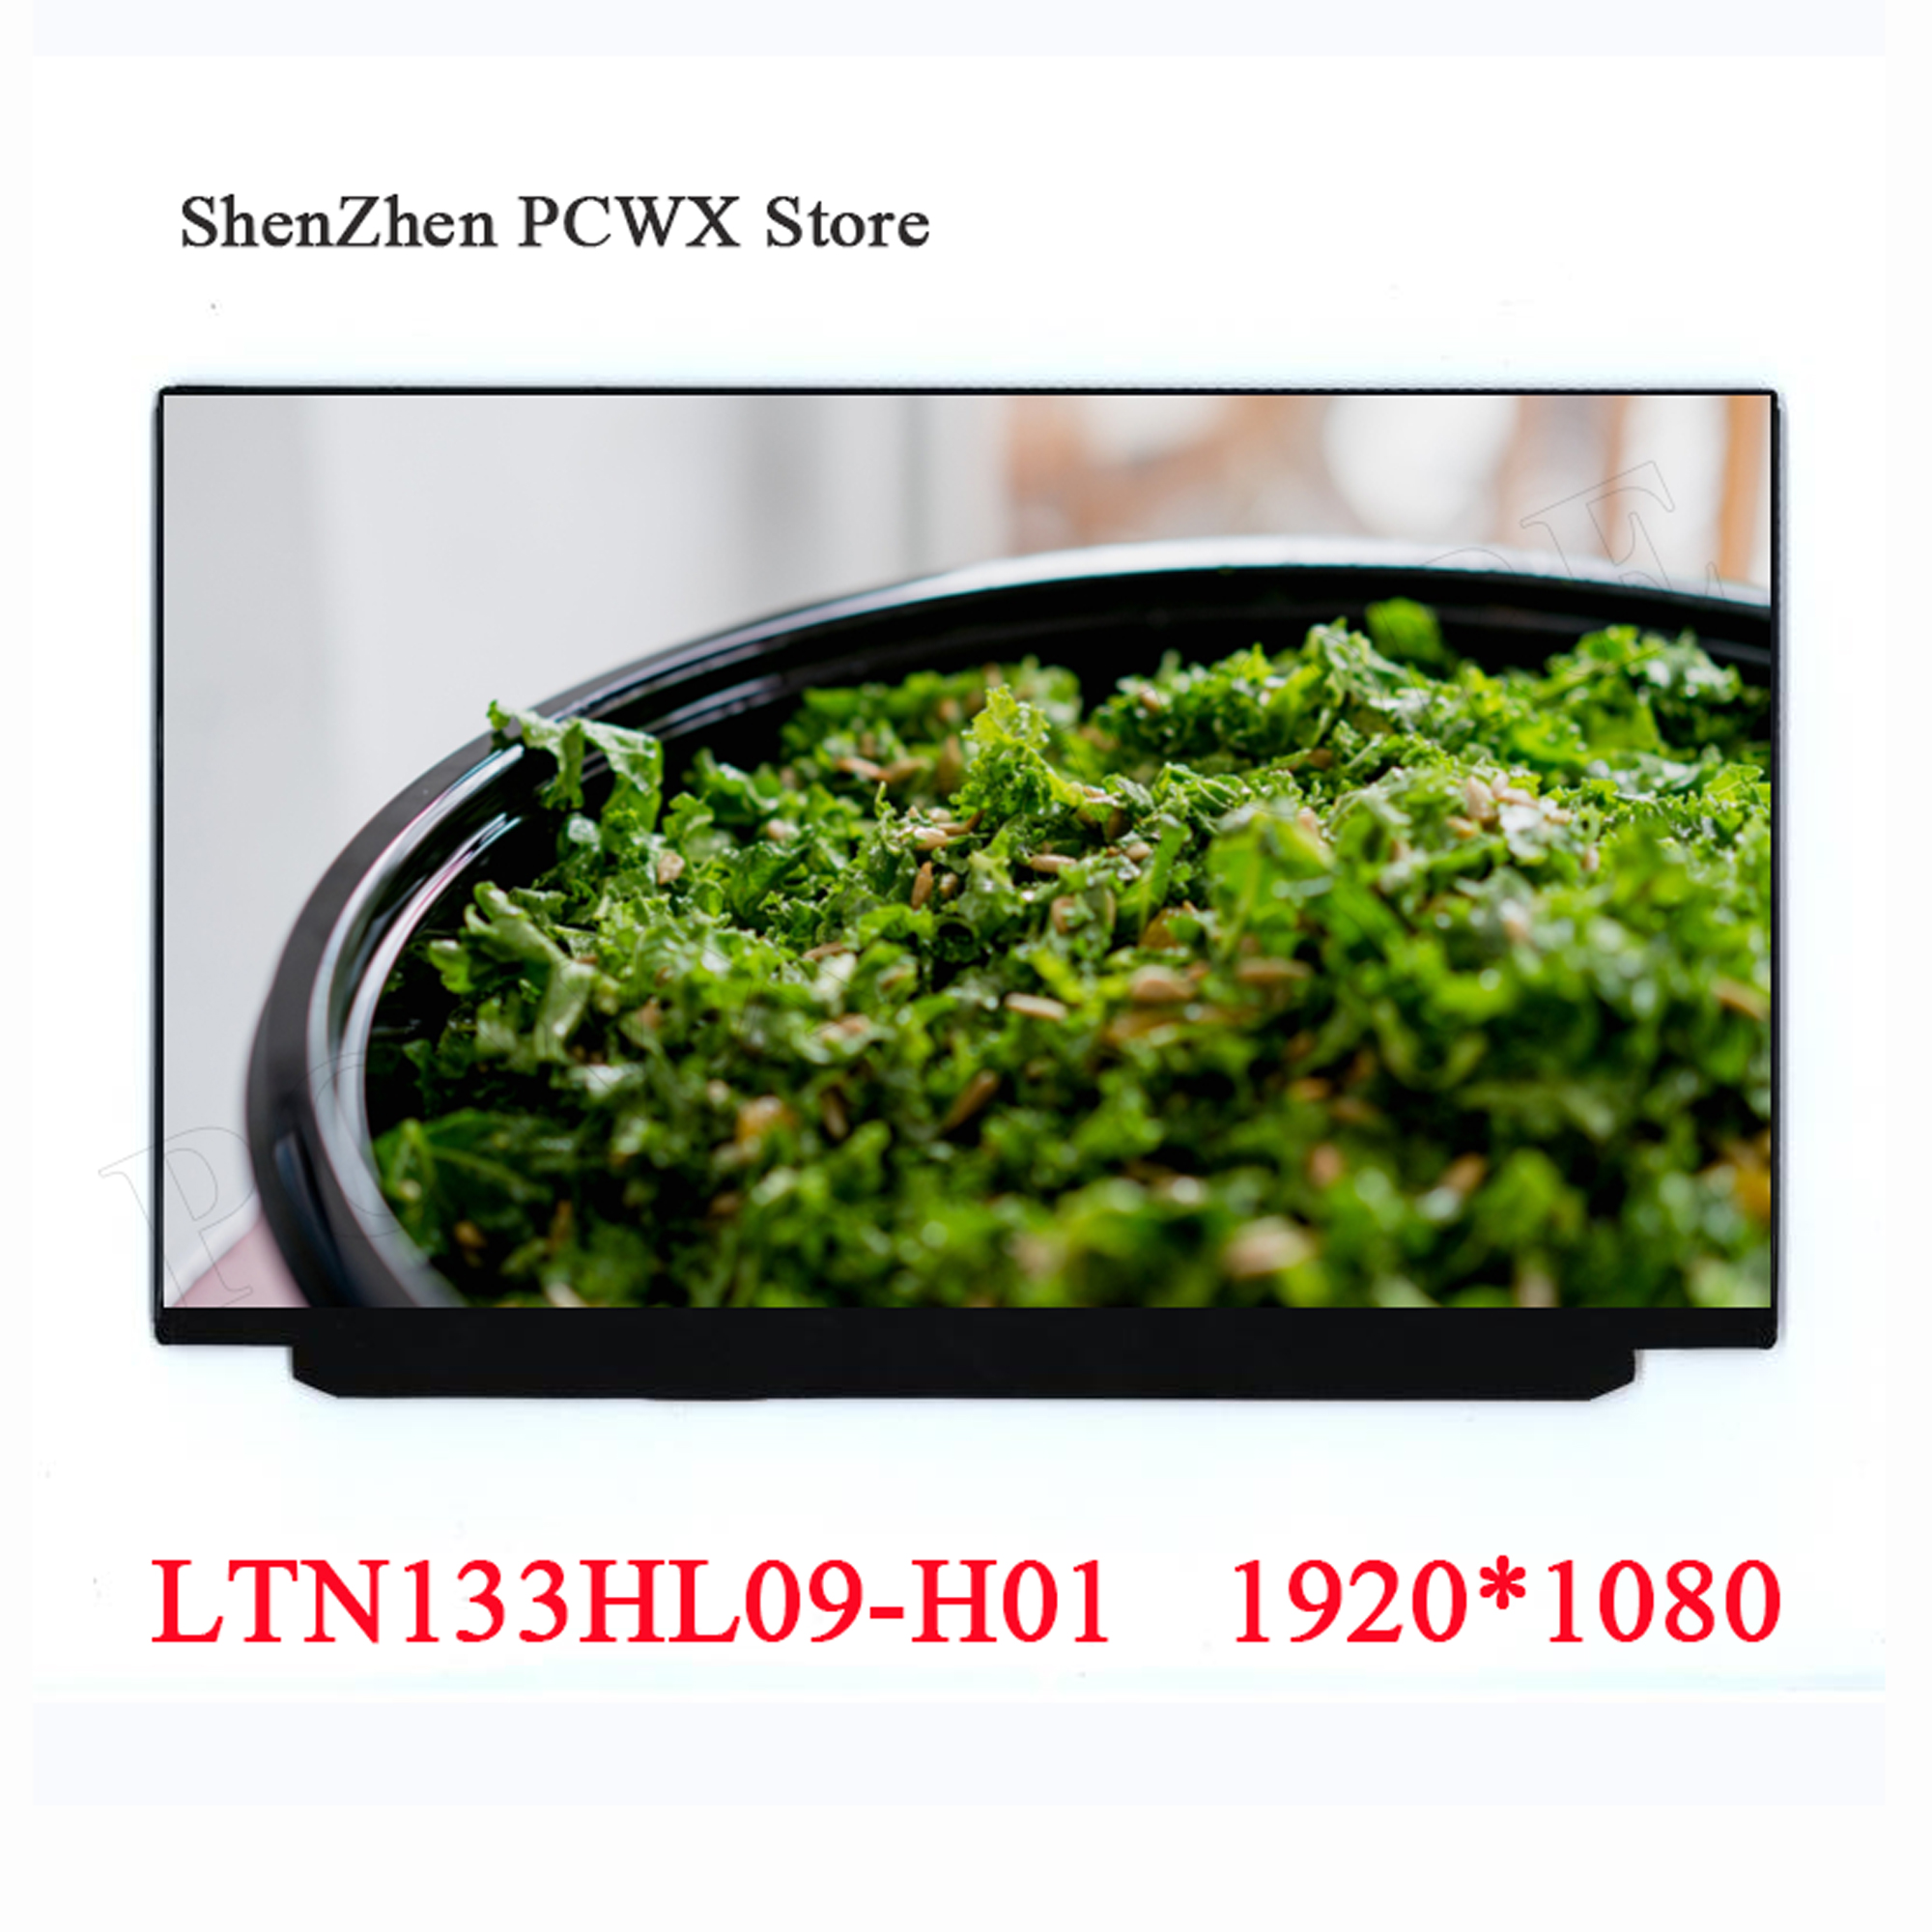 LTN133HL09-H01 13.3 inch Matrix Laptop LCD Screen Replacement Resolution FHD 2K 1920*1080 Notebook Slim LCD Display Panel New